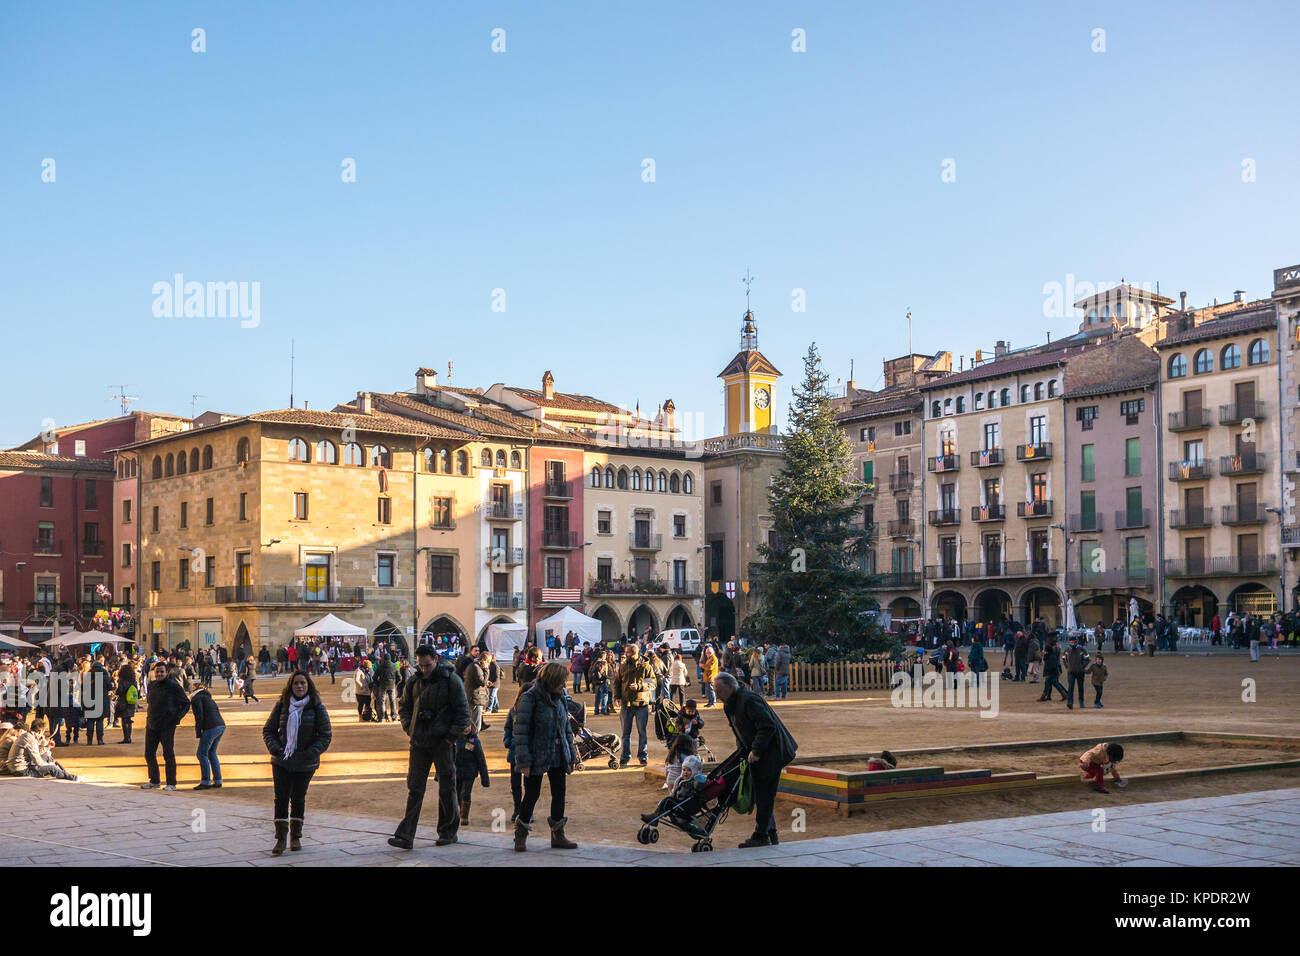 Vic, Spain - December 6, 2013 - View of the main square of Vic, Spain - Stock Image